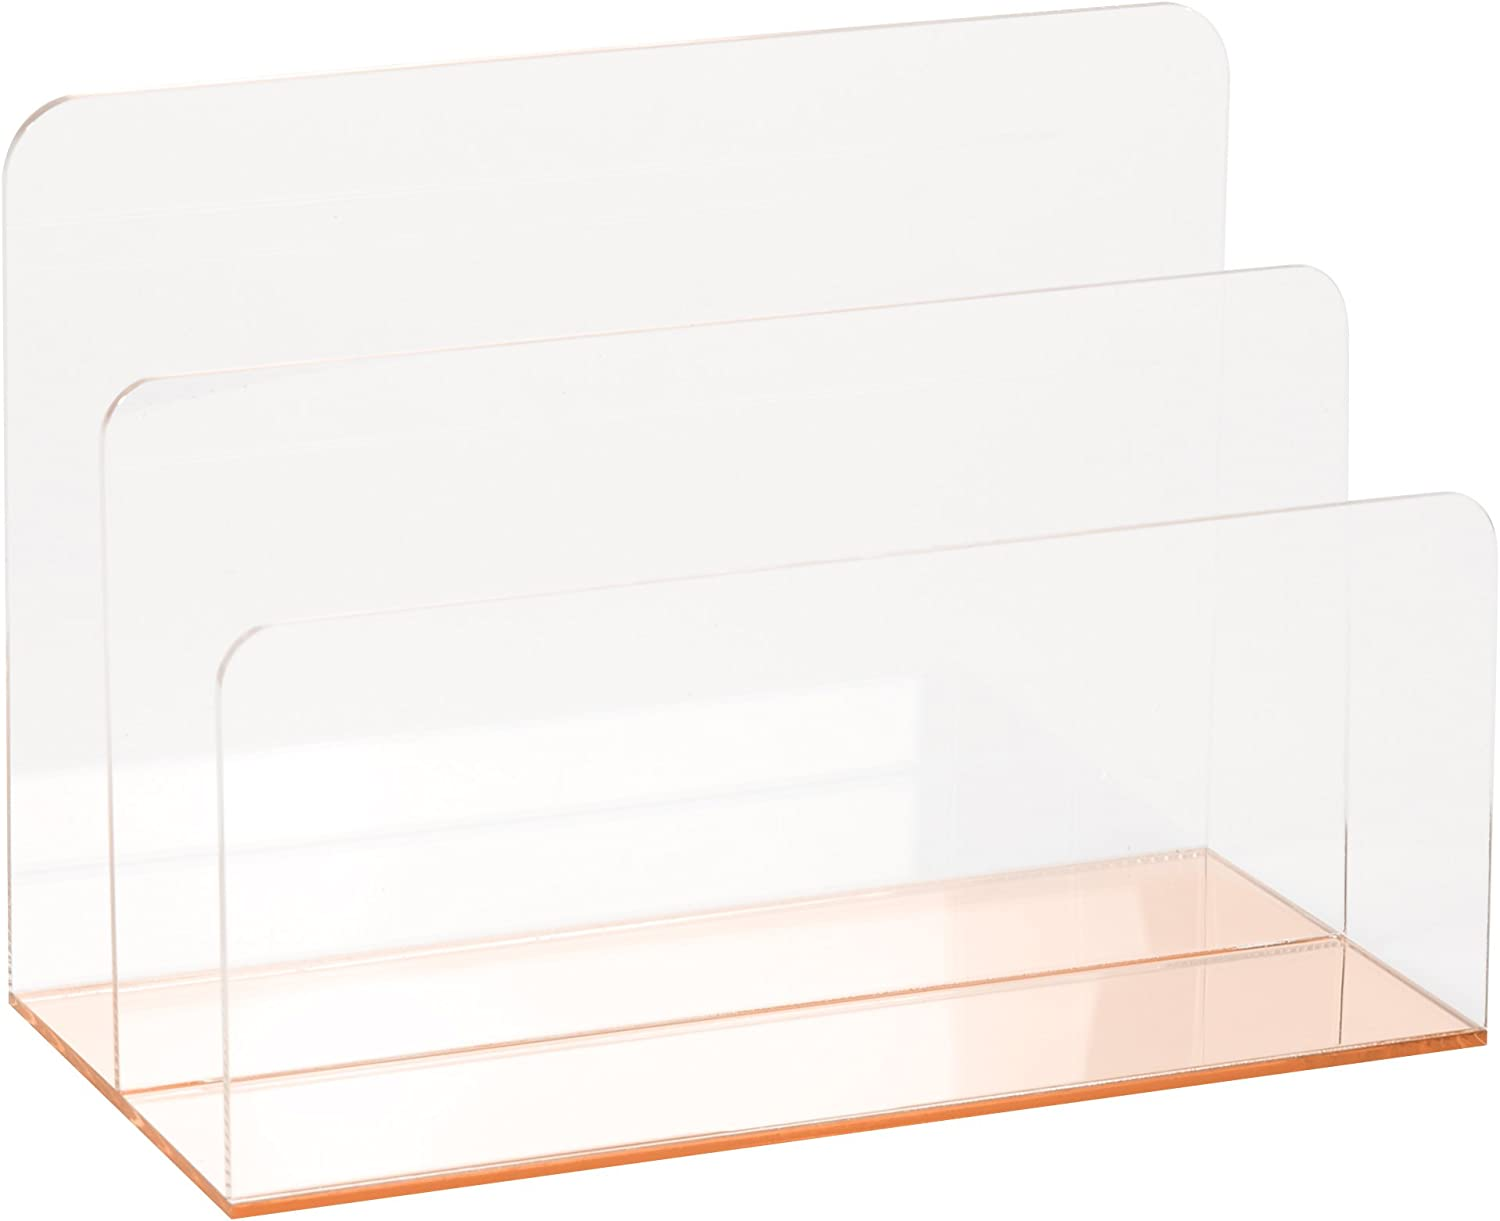 C.R. Gibson Rose Gold Clear Acrylic File Holder